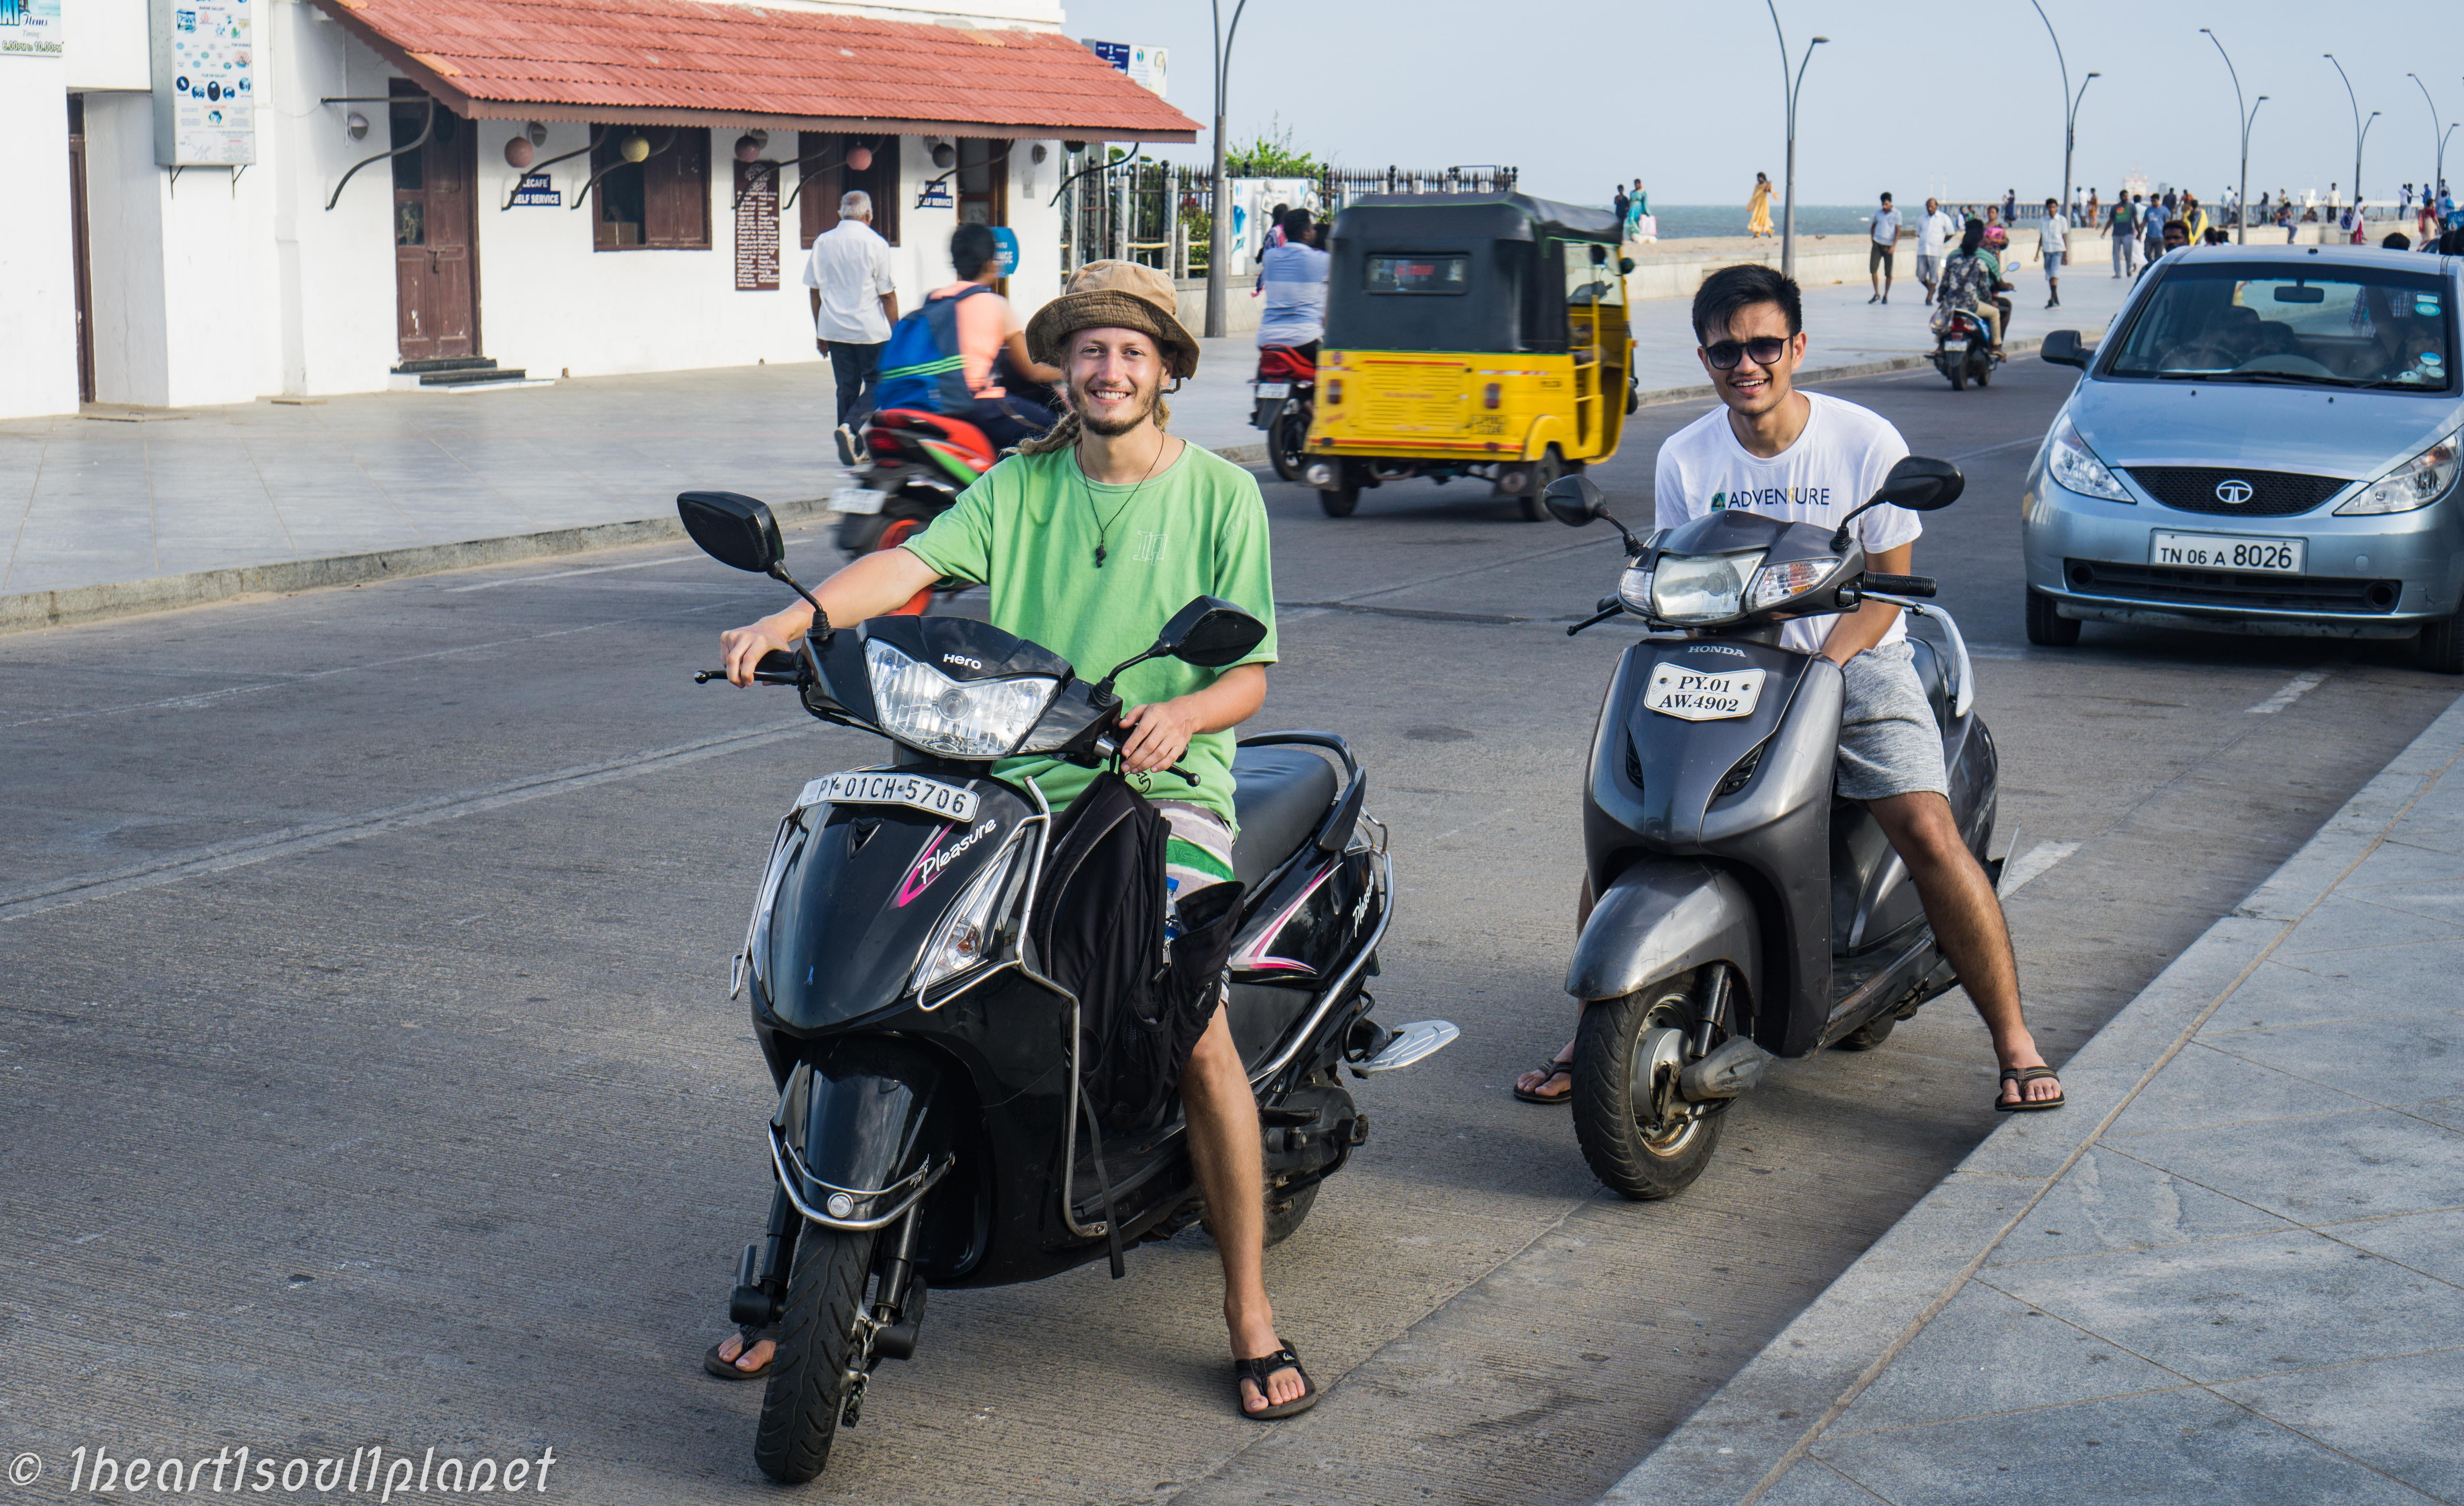 Scooter Gang